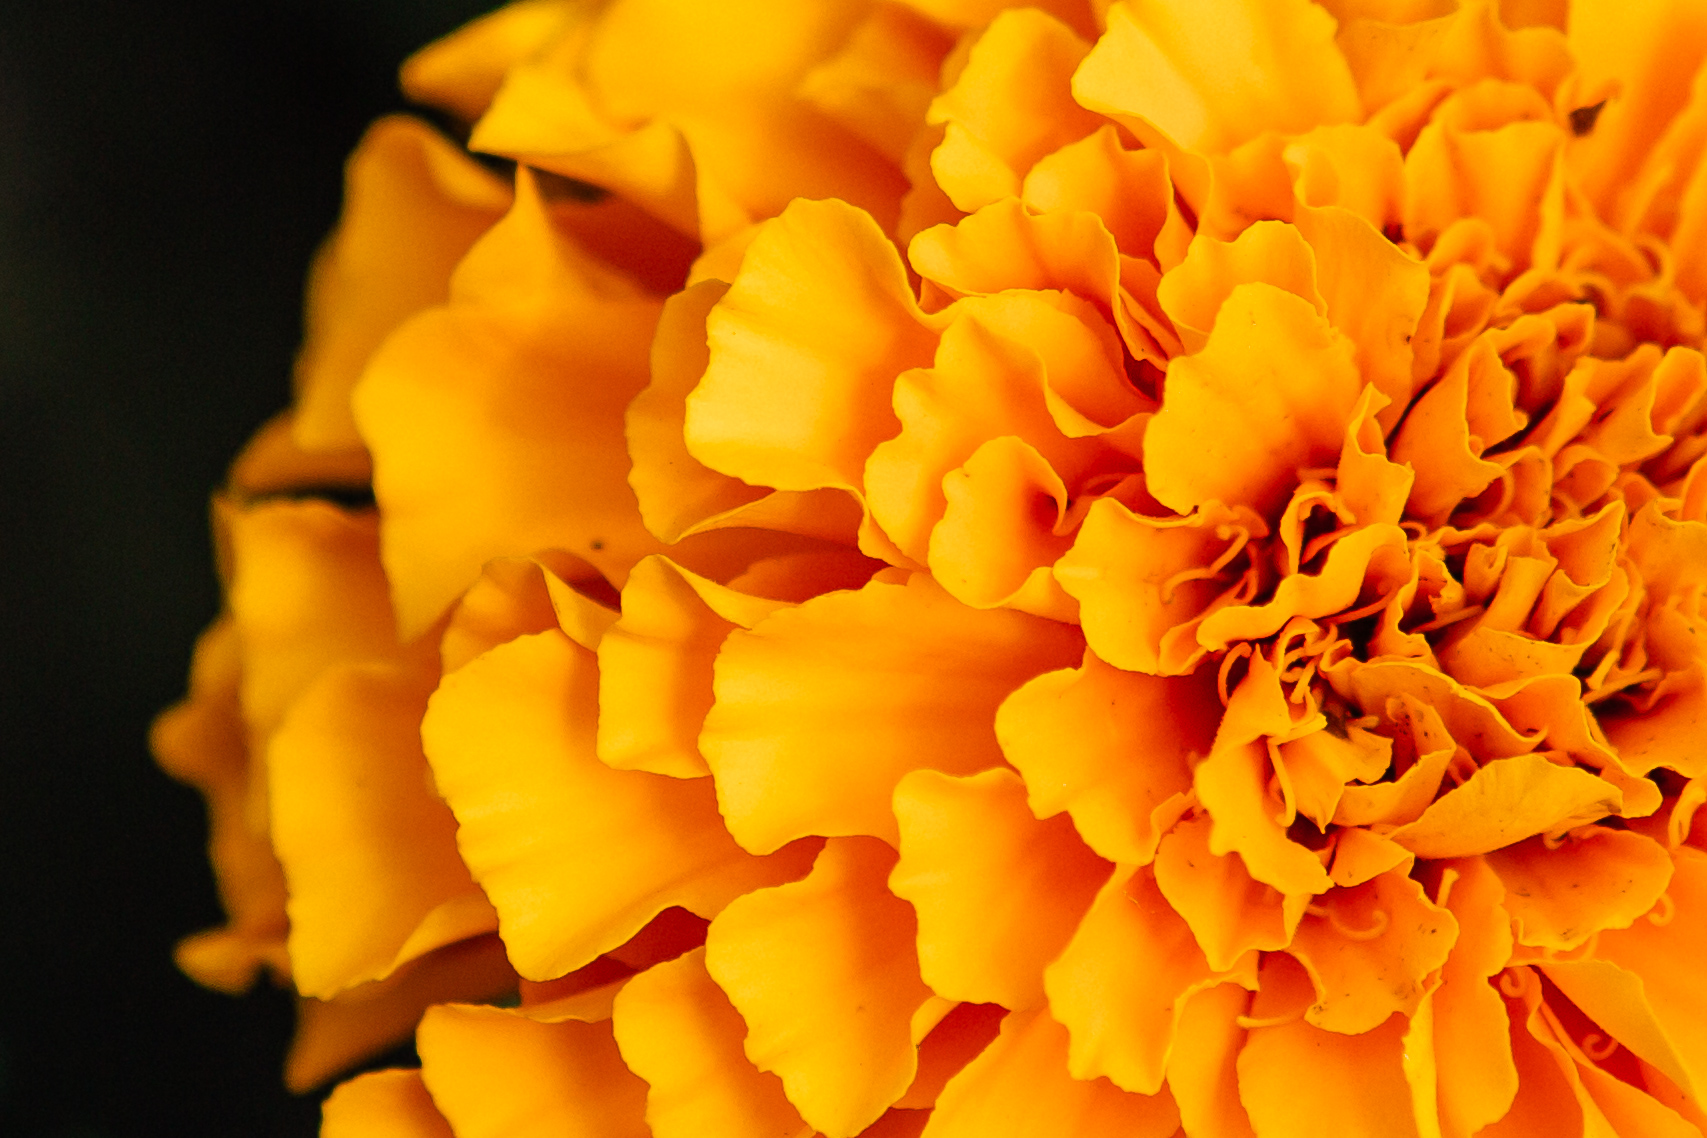 Crazy beautiful marigolds sparkle all throughout the scene.